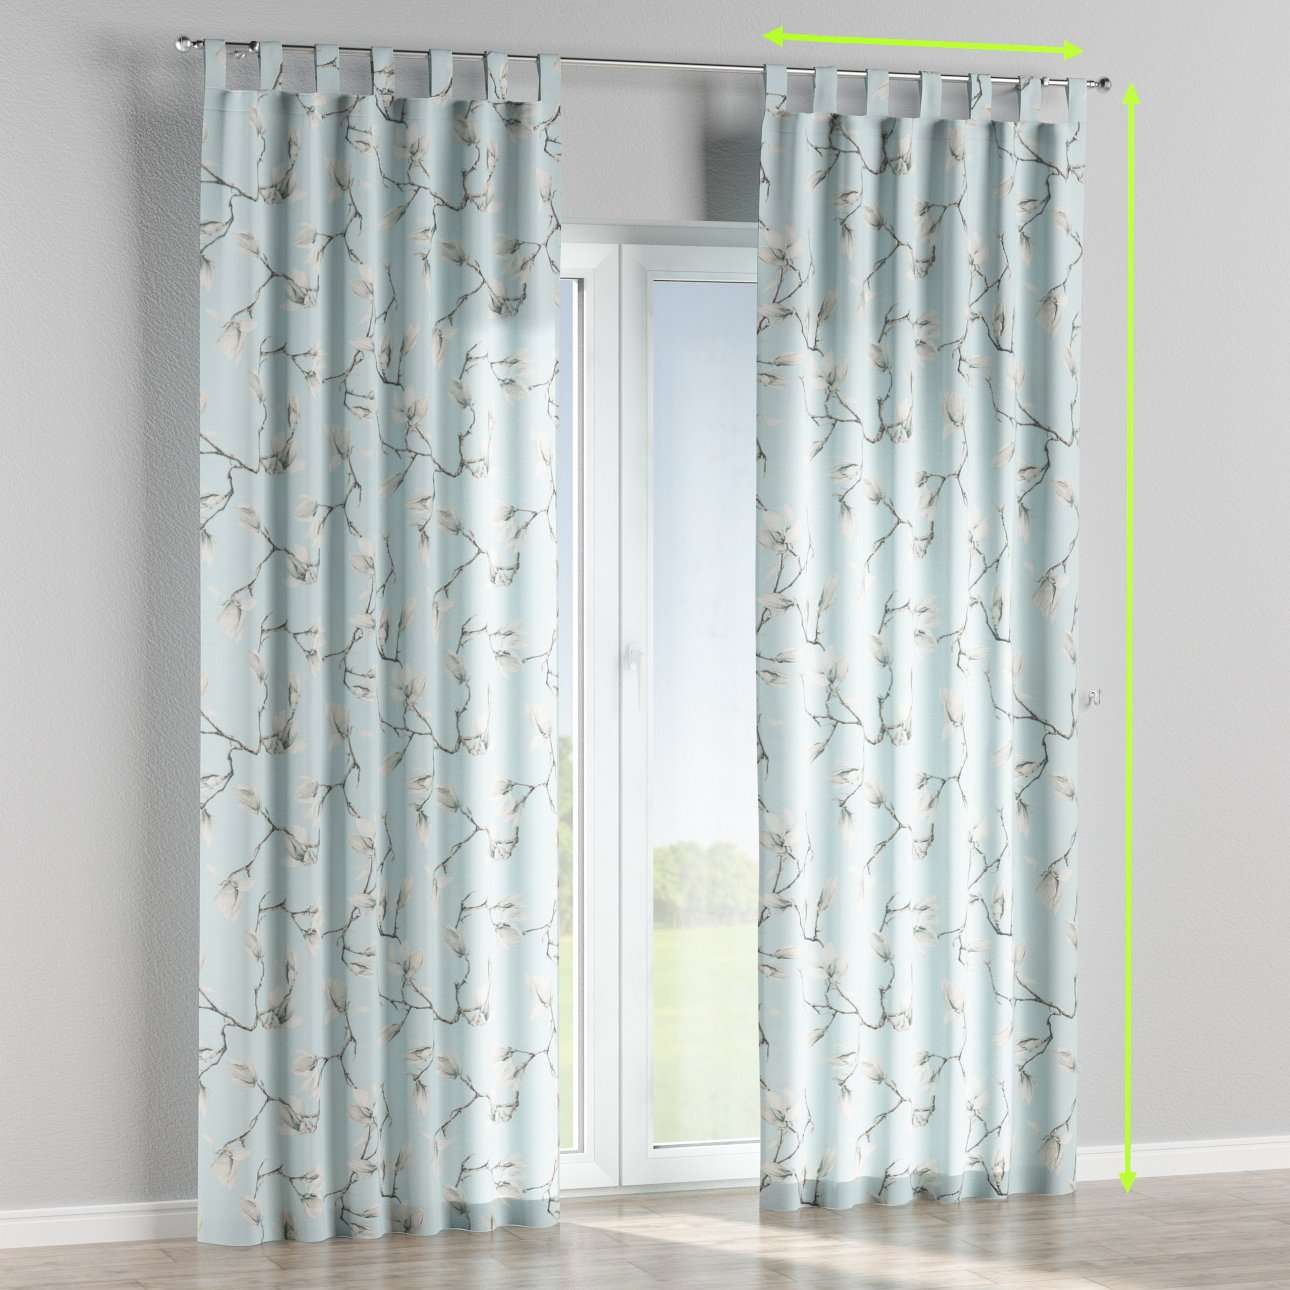 Tab top lined curtains in collection Flowers, fabric: 311-14